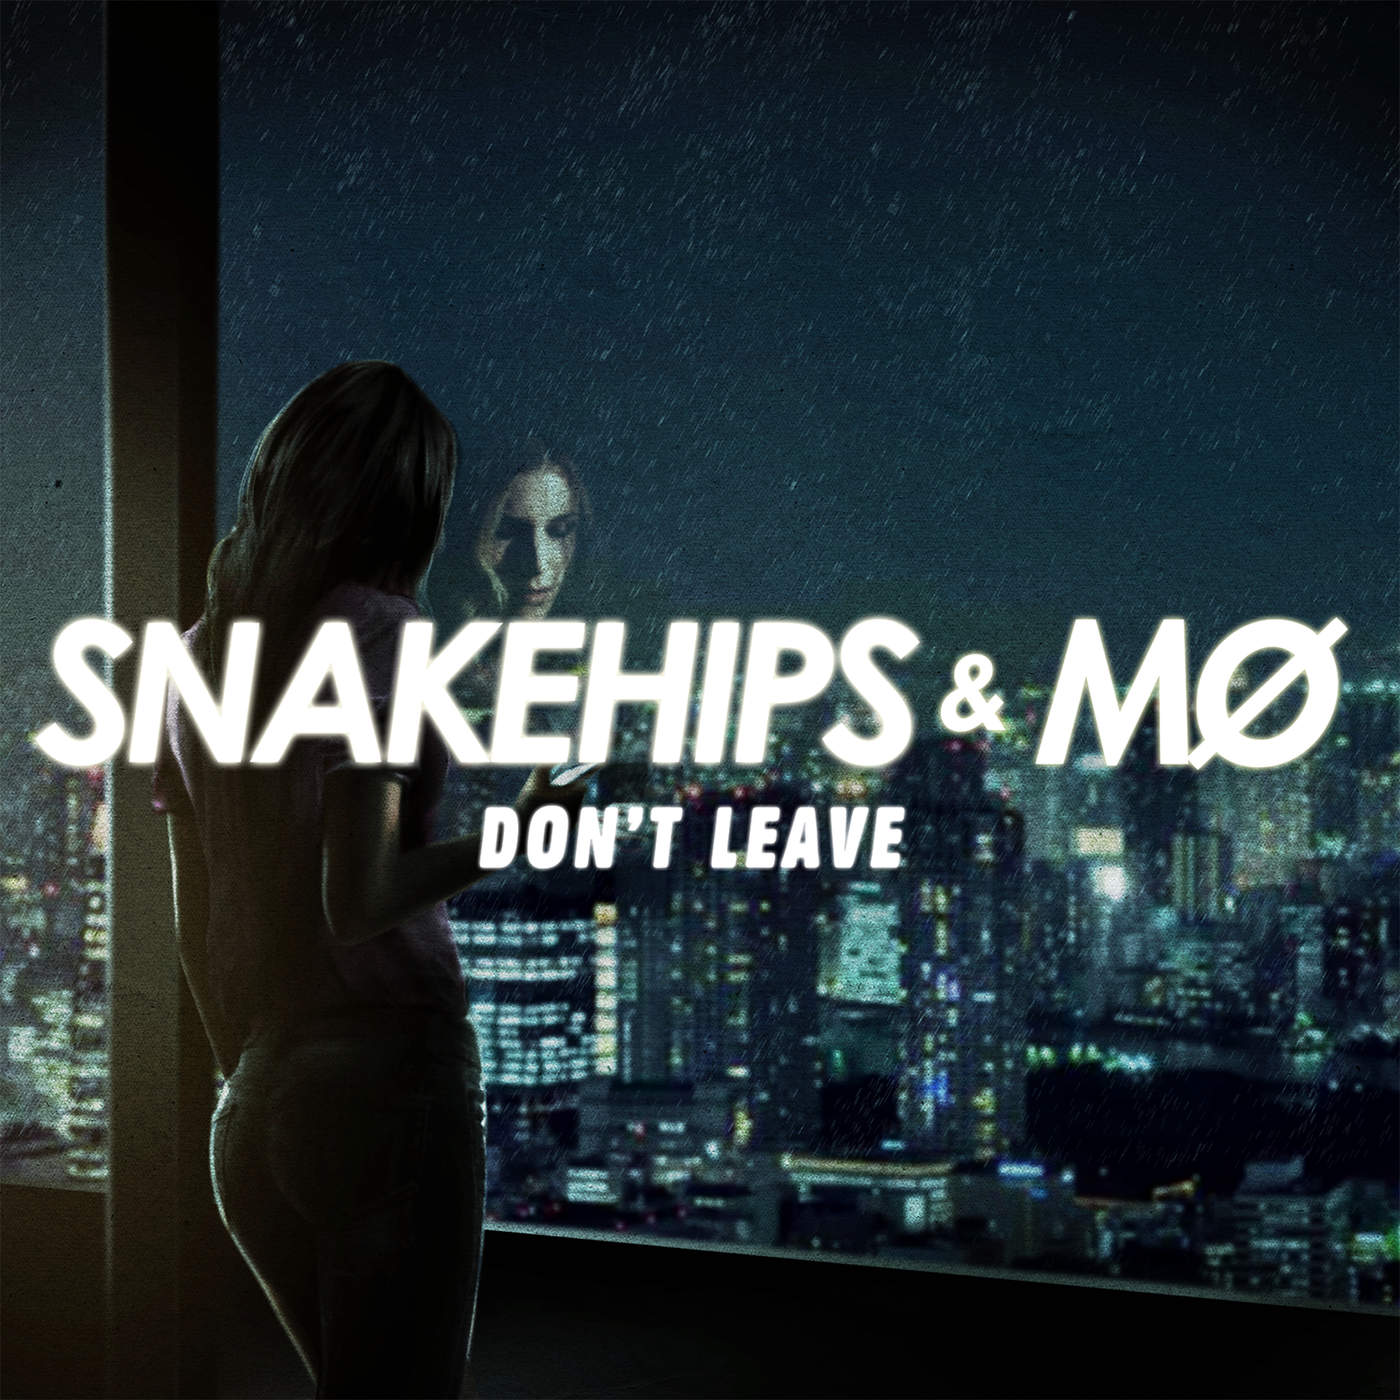 Snakehips & MØ - Don't Leave - Single Cover